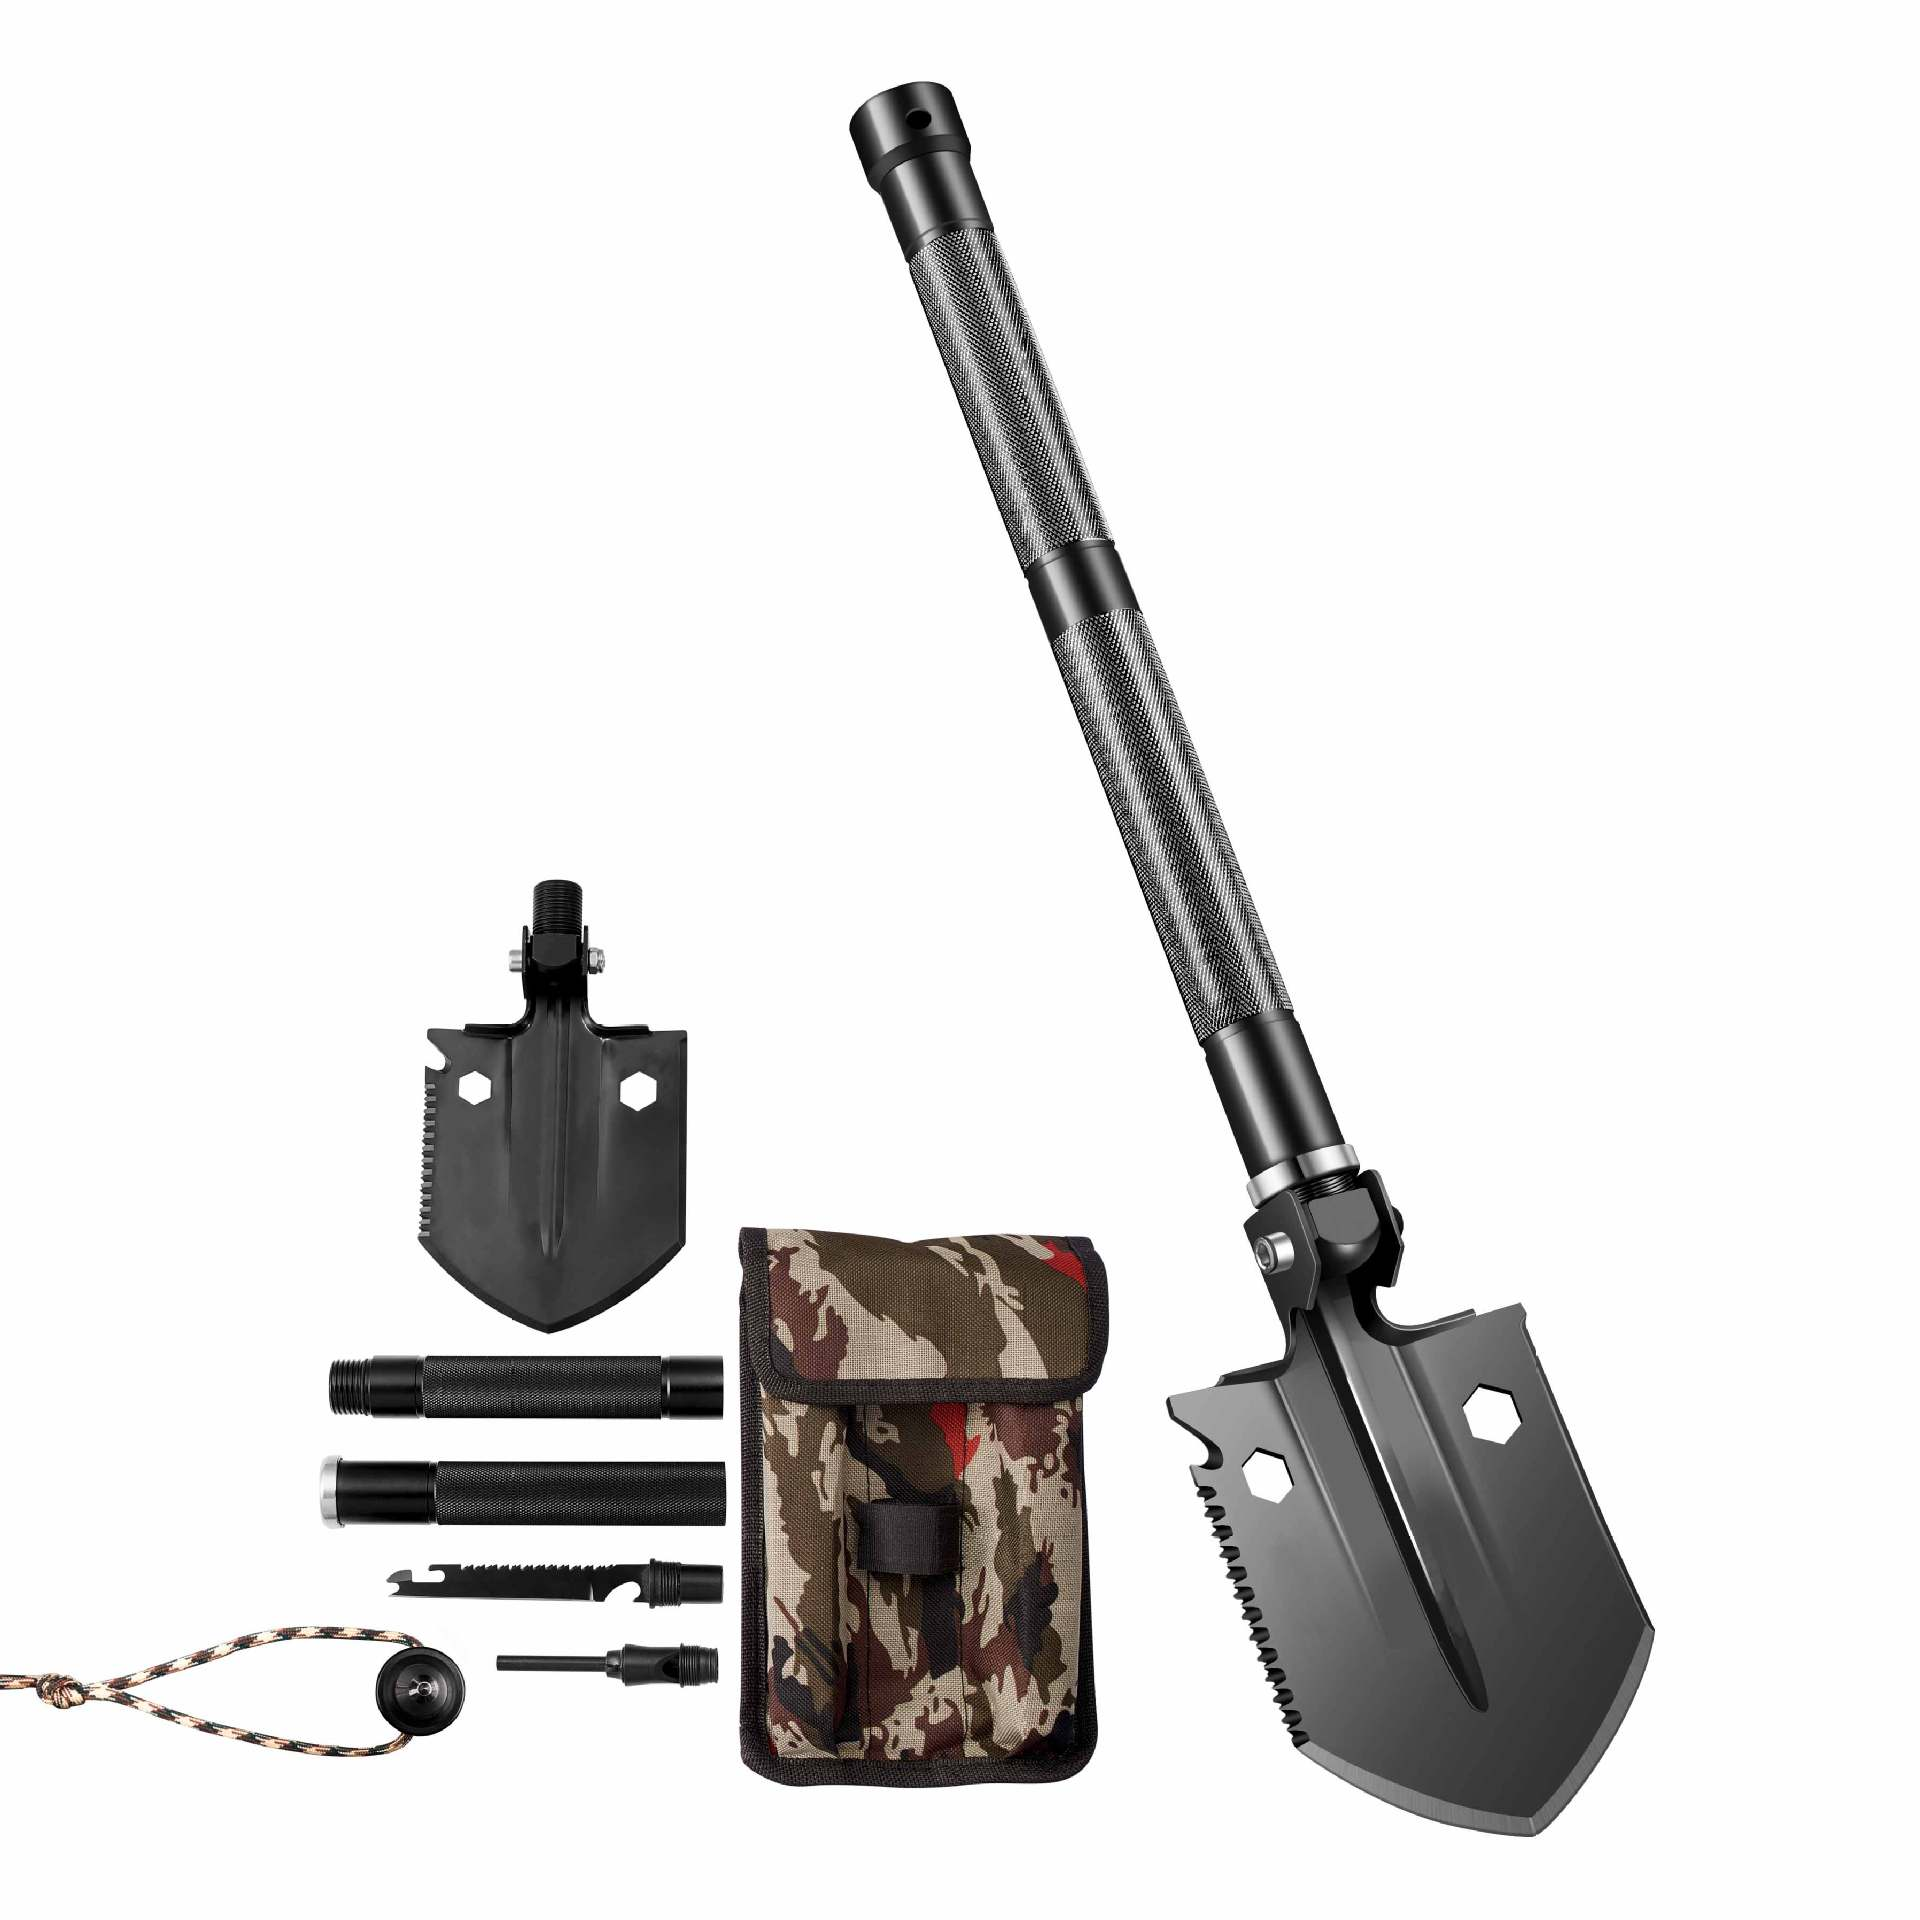 HX Mini Engineer Shovel Outdoor Survival Multi-purpose Soldier Shovel Camping Fishing Foldable Military Emergency Shovel Weapon